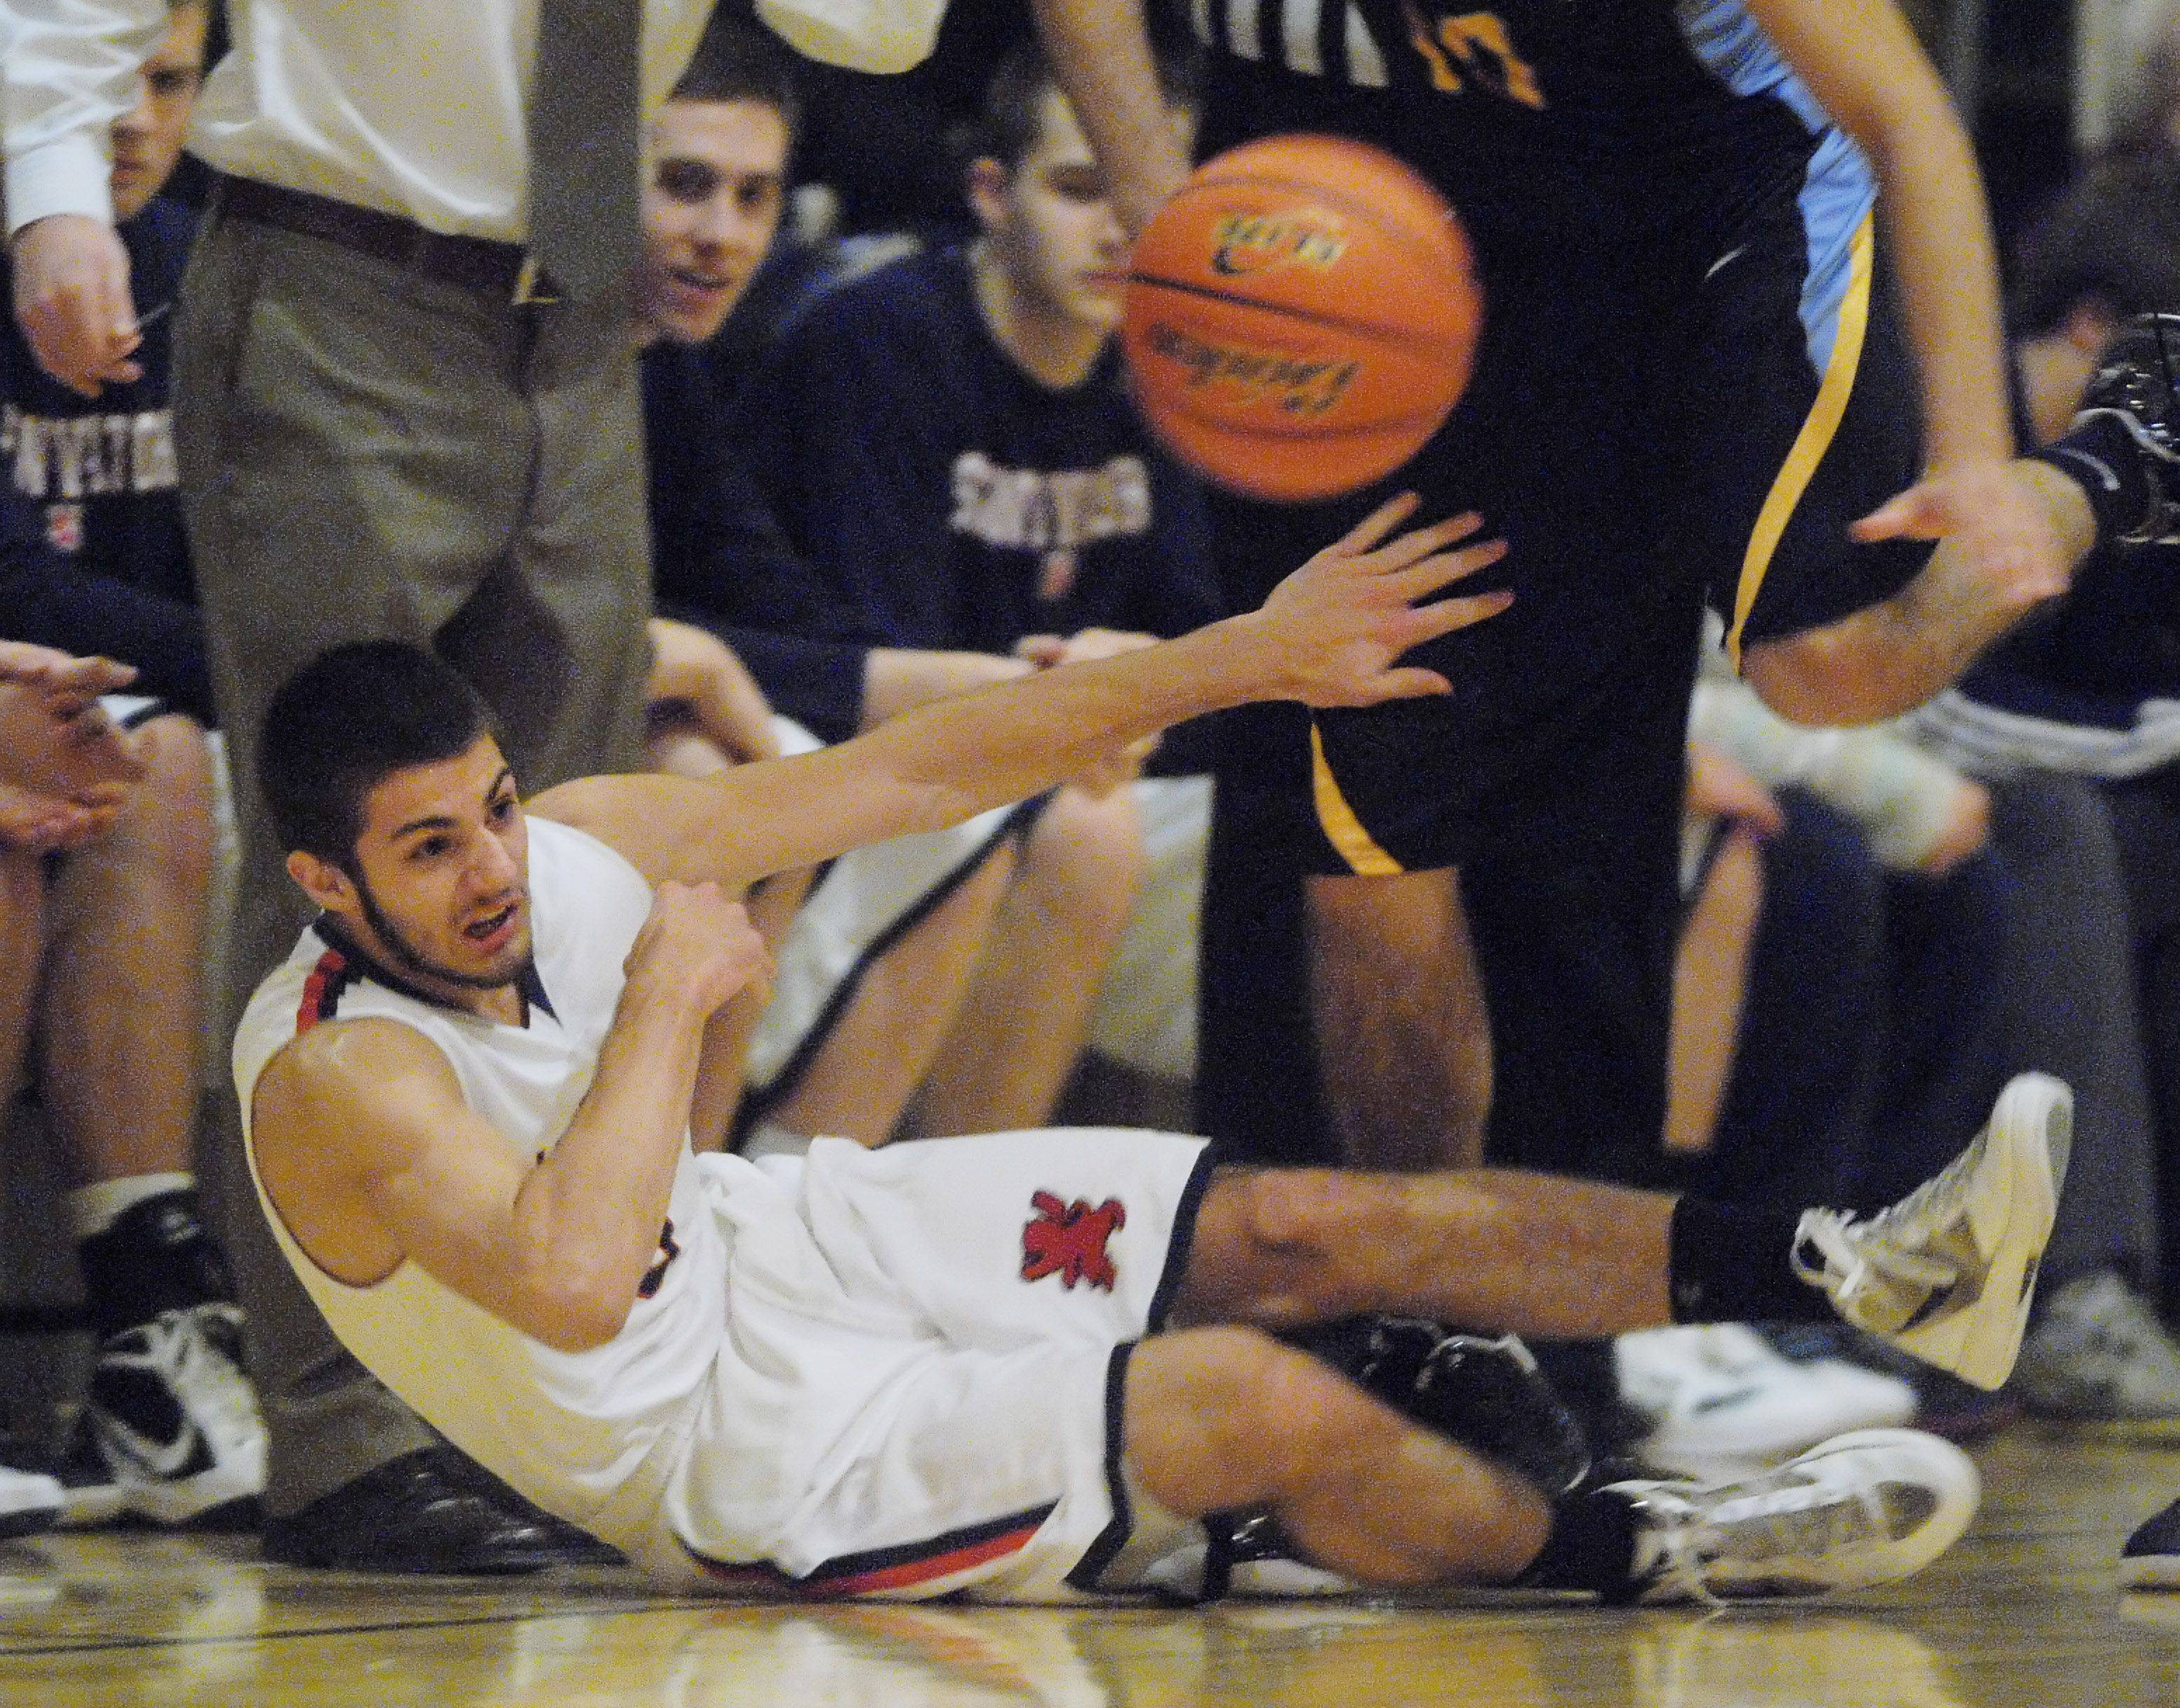 Images from the St. Viator vs. Maine West boys basketball game Tuesday, December 27, 2011.